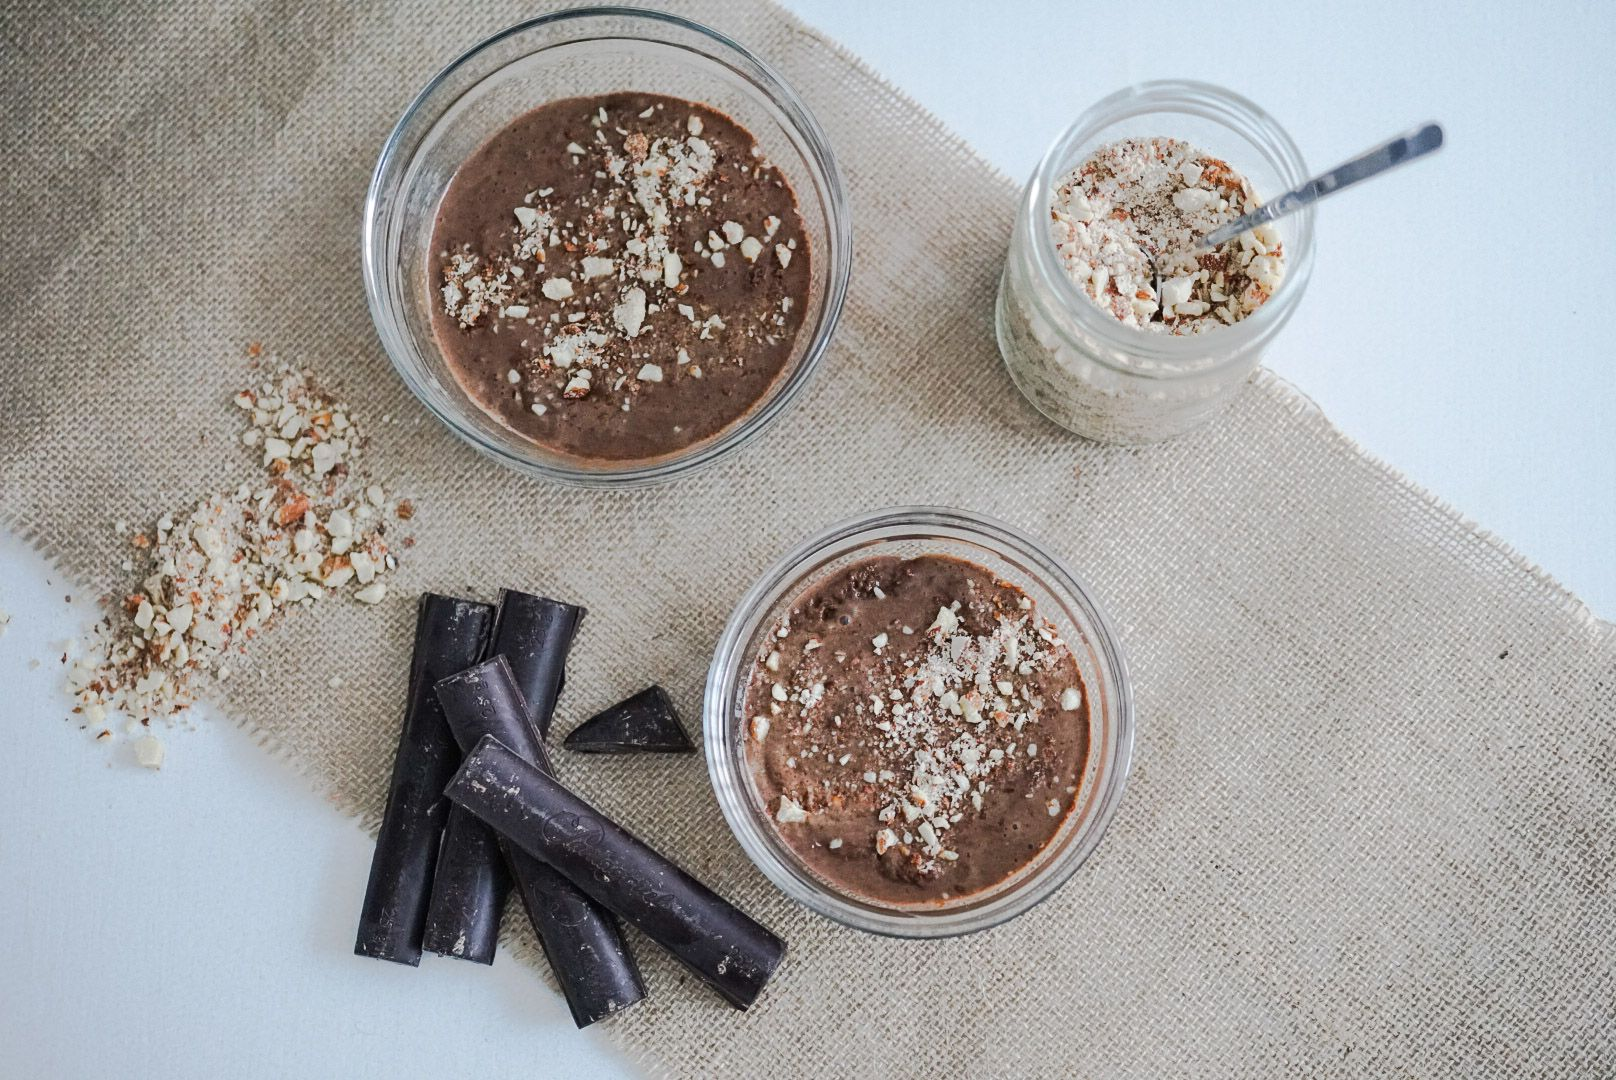 Chocolate Mousse Fit